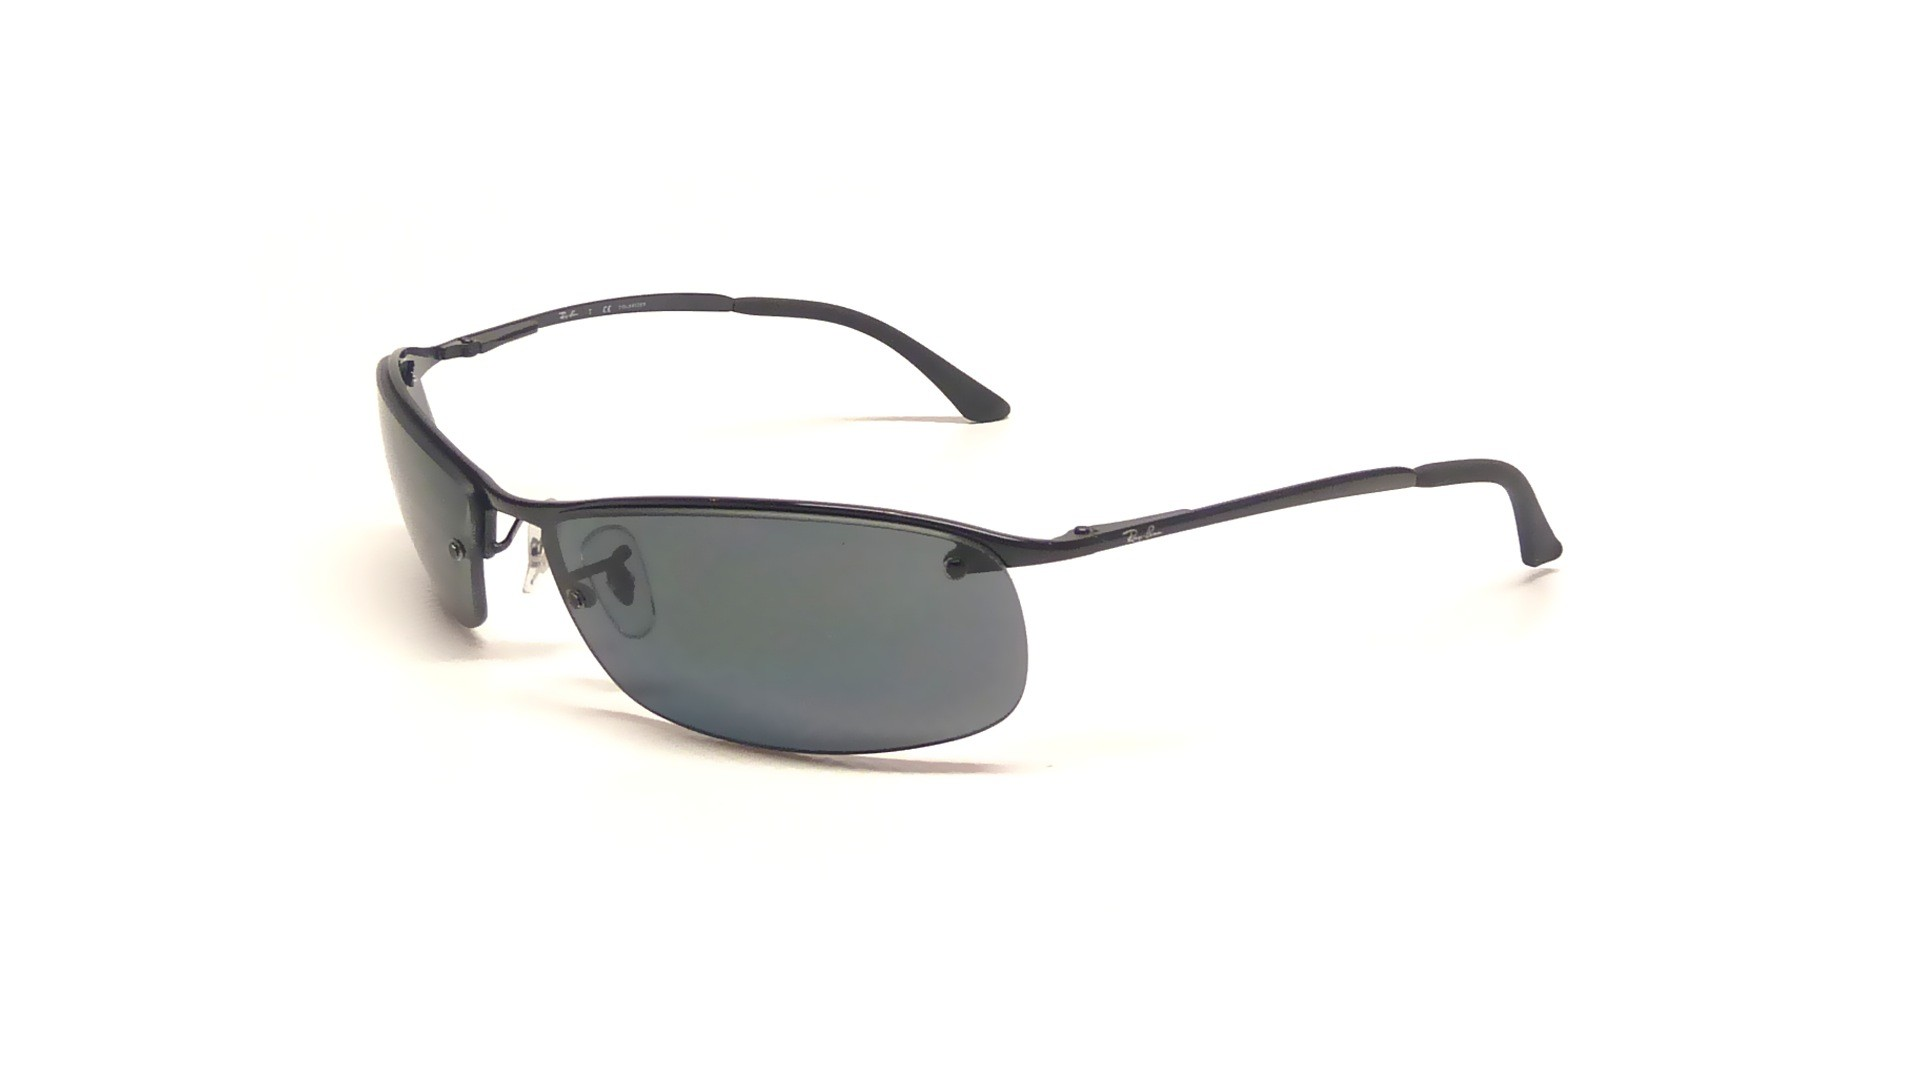 45d70c584f Sunglasses Ray-Ban RB3183 002 81 63-15 Black Large Polarized